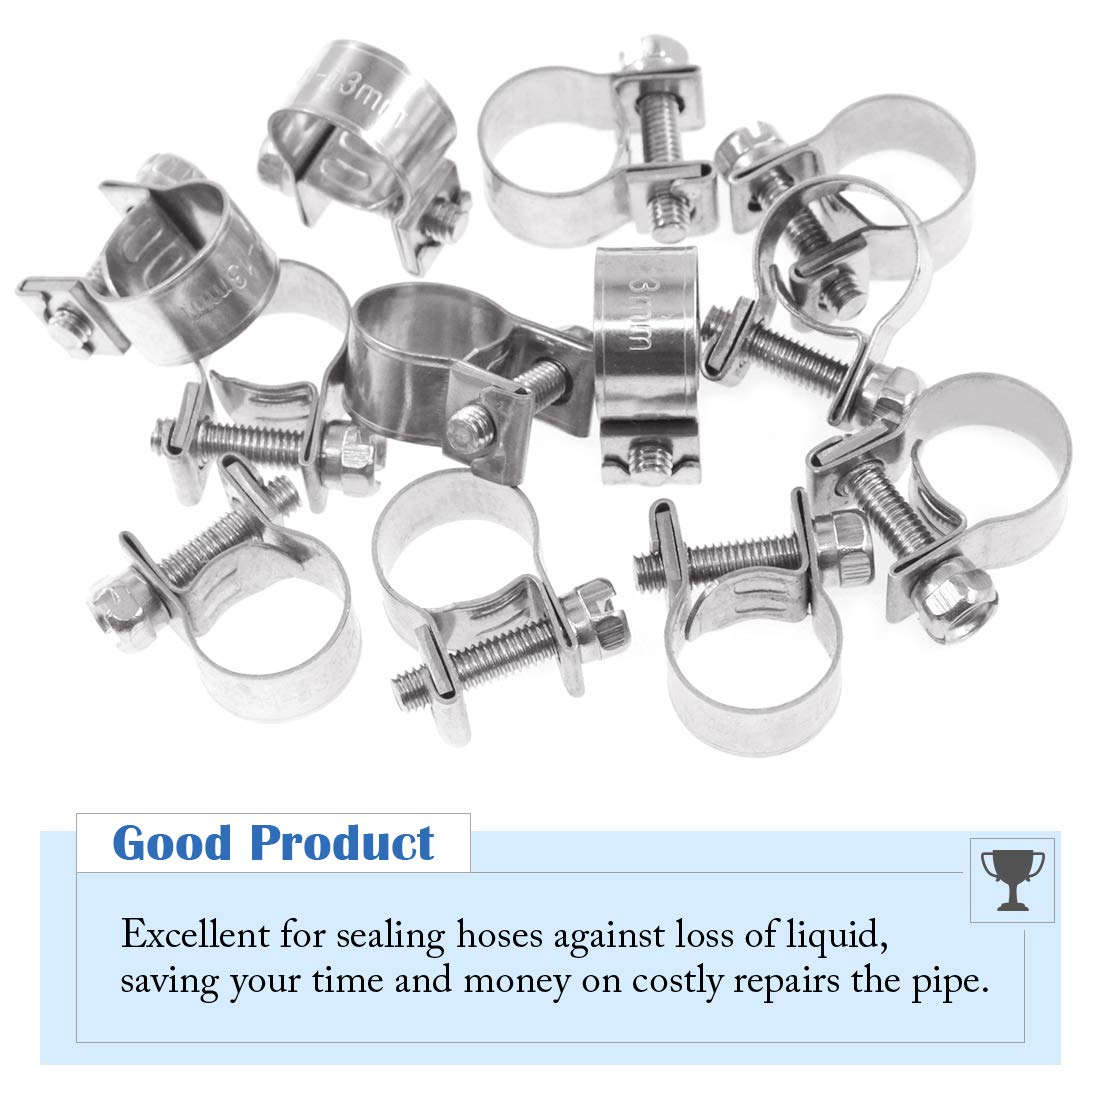 9//16-5//8 Dia Glarks 12Pack 14-16mm Stainless Steel Mini Fuel Injection Hose Clamps Adjustable Pipe Hose Clip Tube Clamps Set